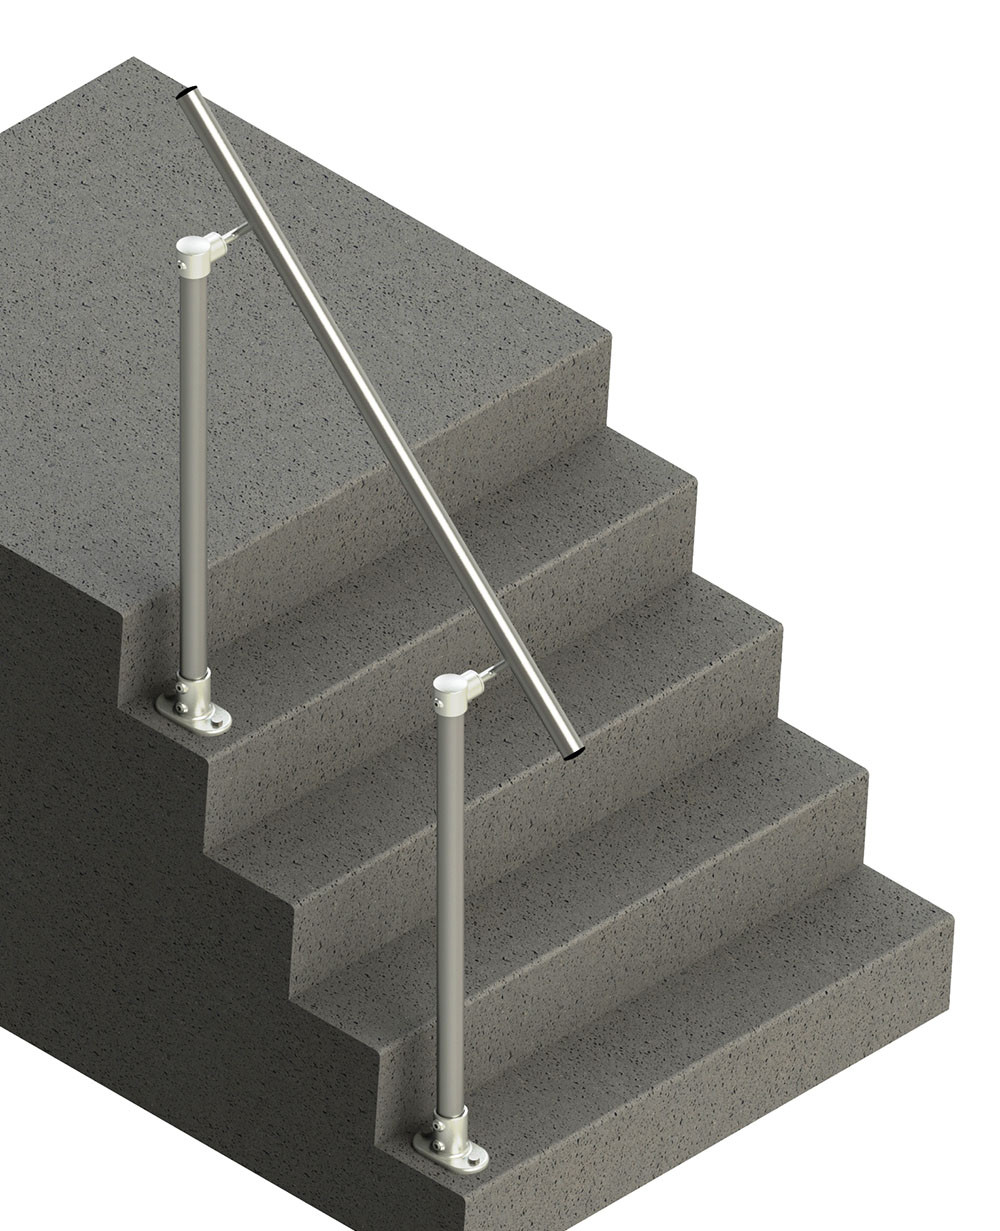 Floor mounted handrail kit, render